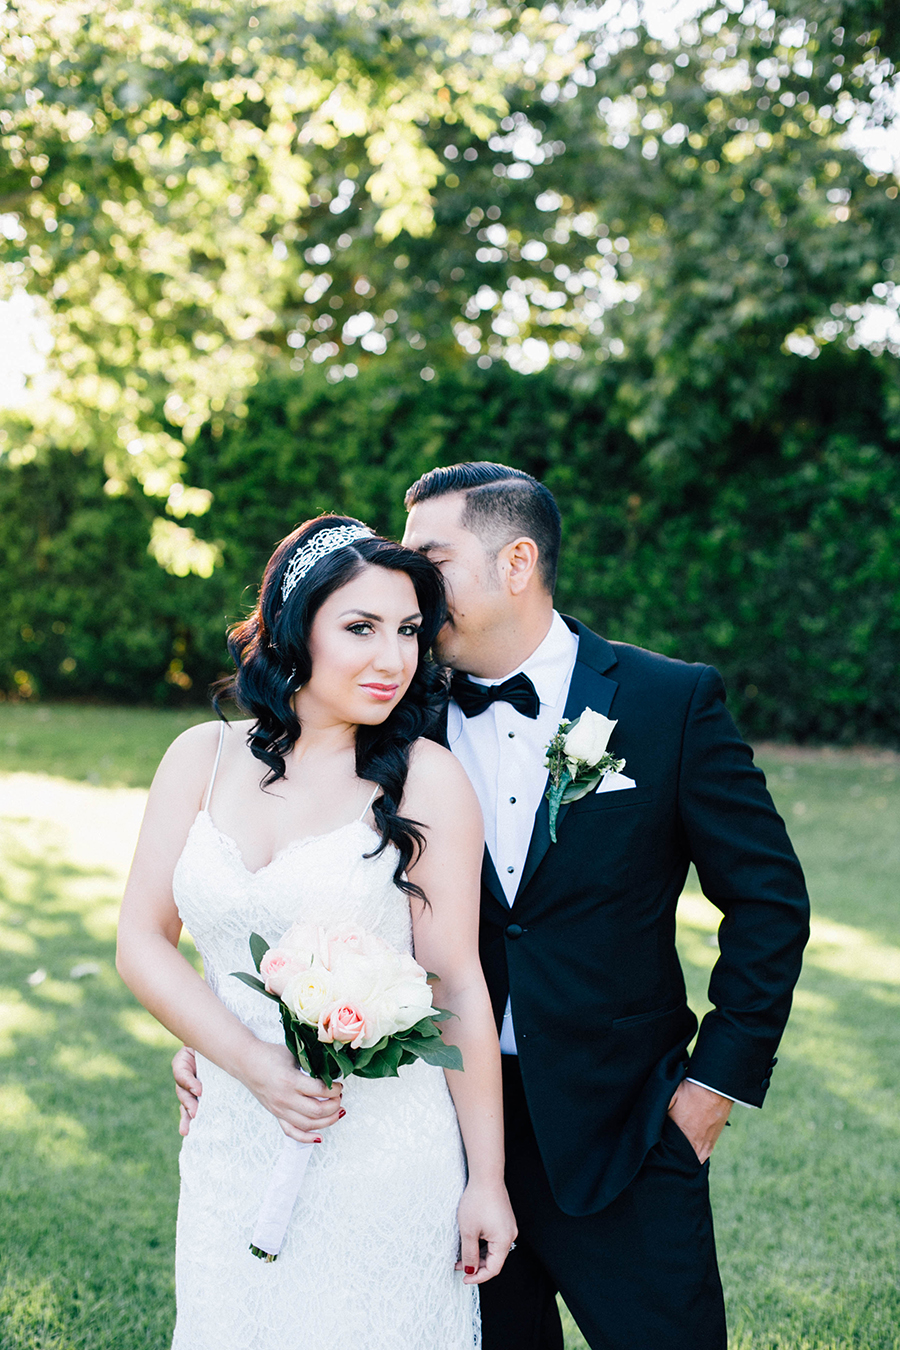 romantic-calamigos-losangeles-burbank-wedding-by-gabrielagandara-14